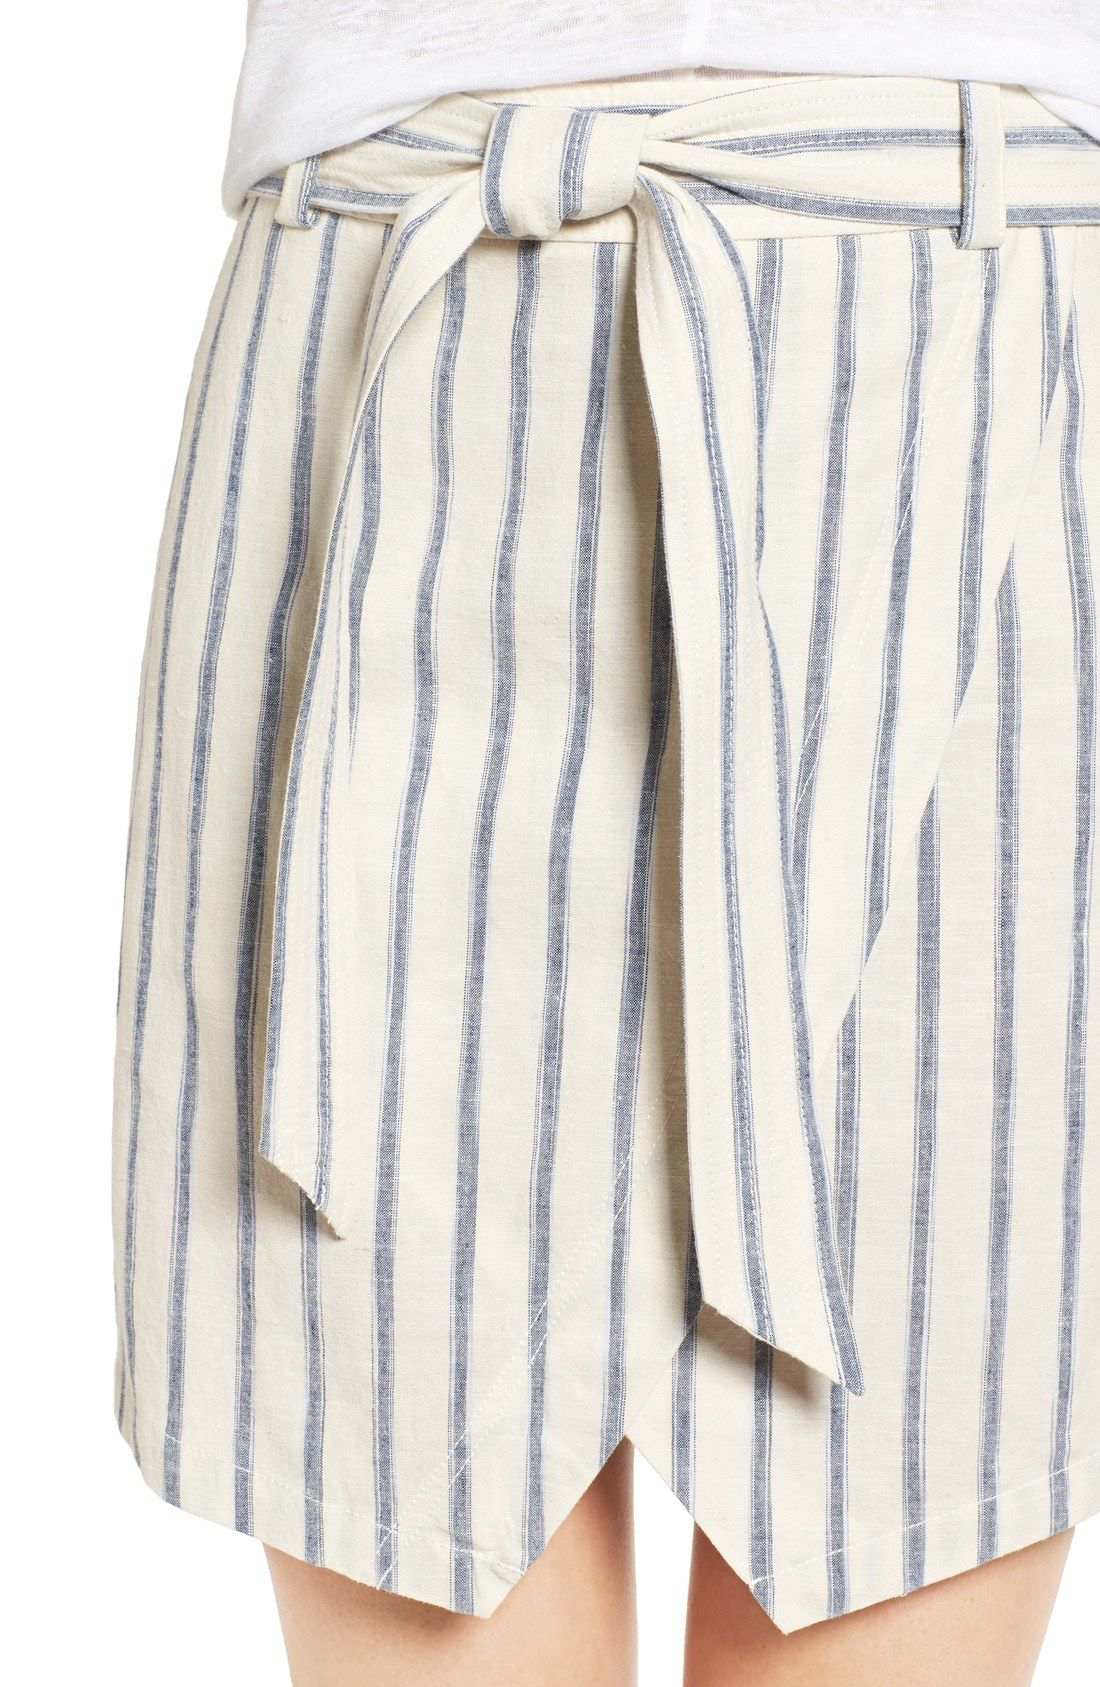 Madewell Striped Linen Skirt // this would be a cute take on 4th of july style